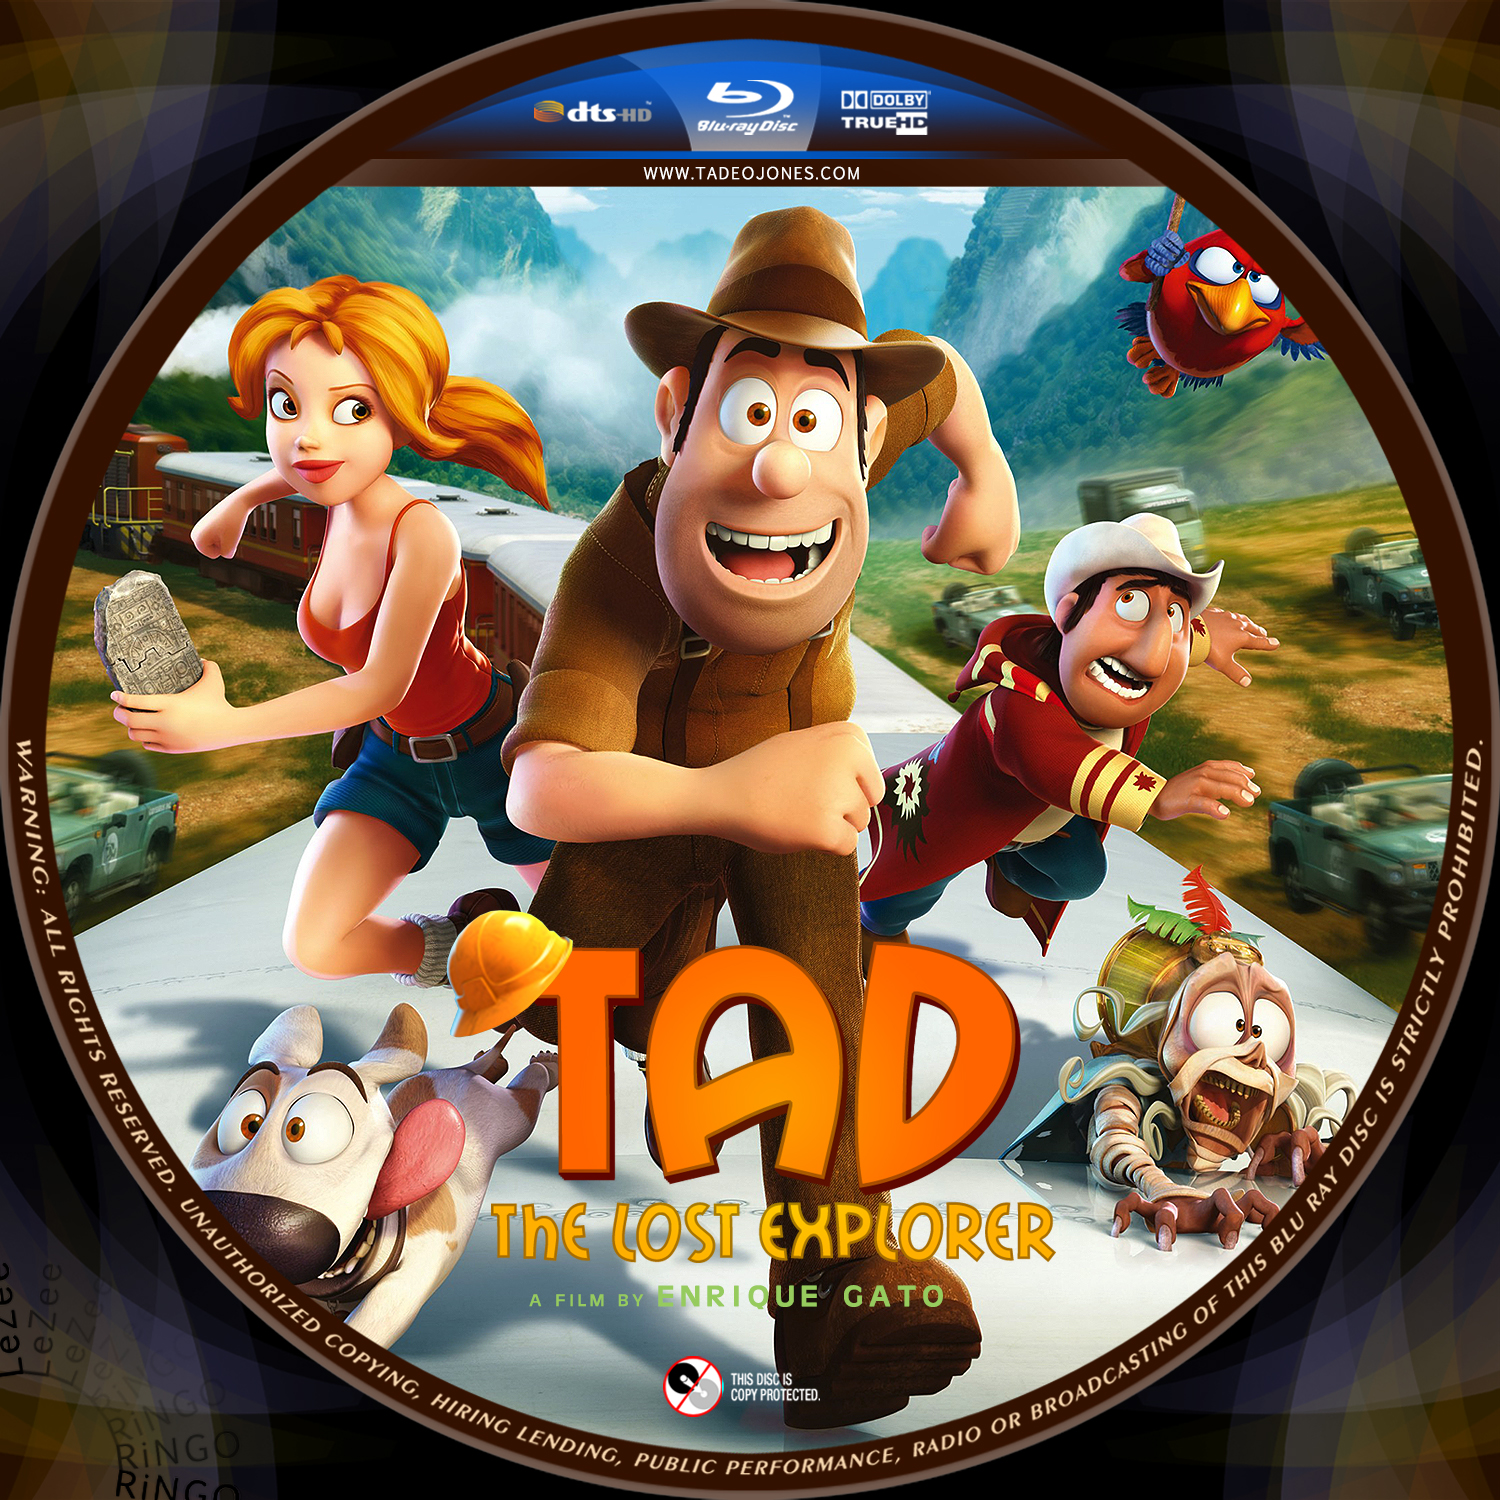 Watch tad, the lost explorer (2012) full movie online free no.